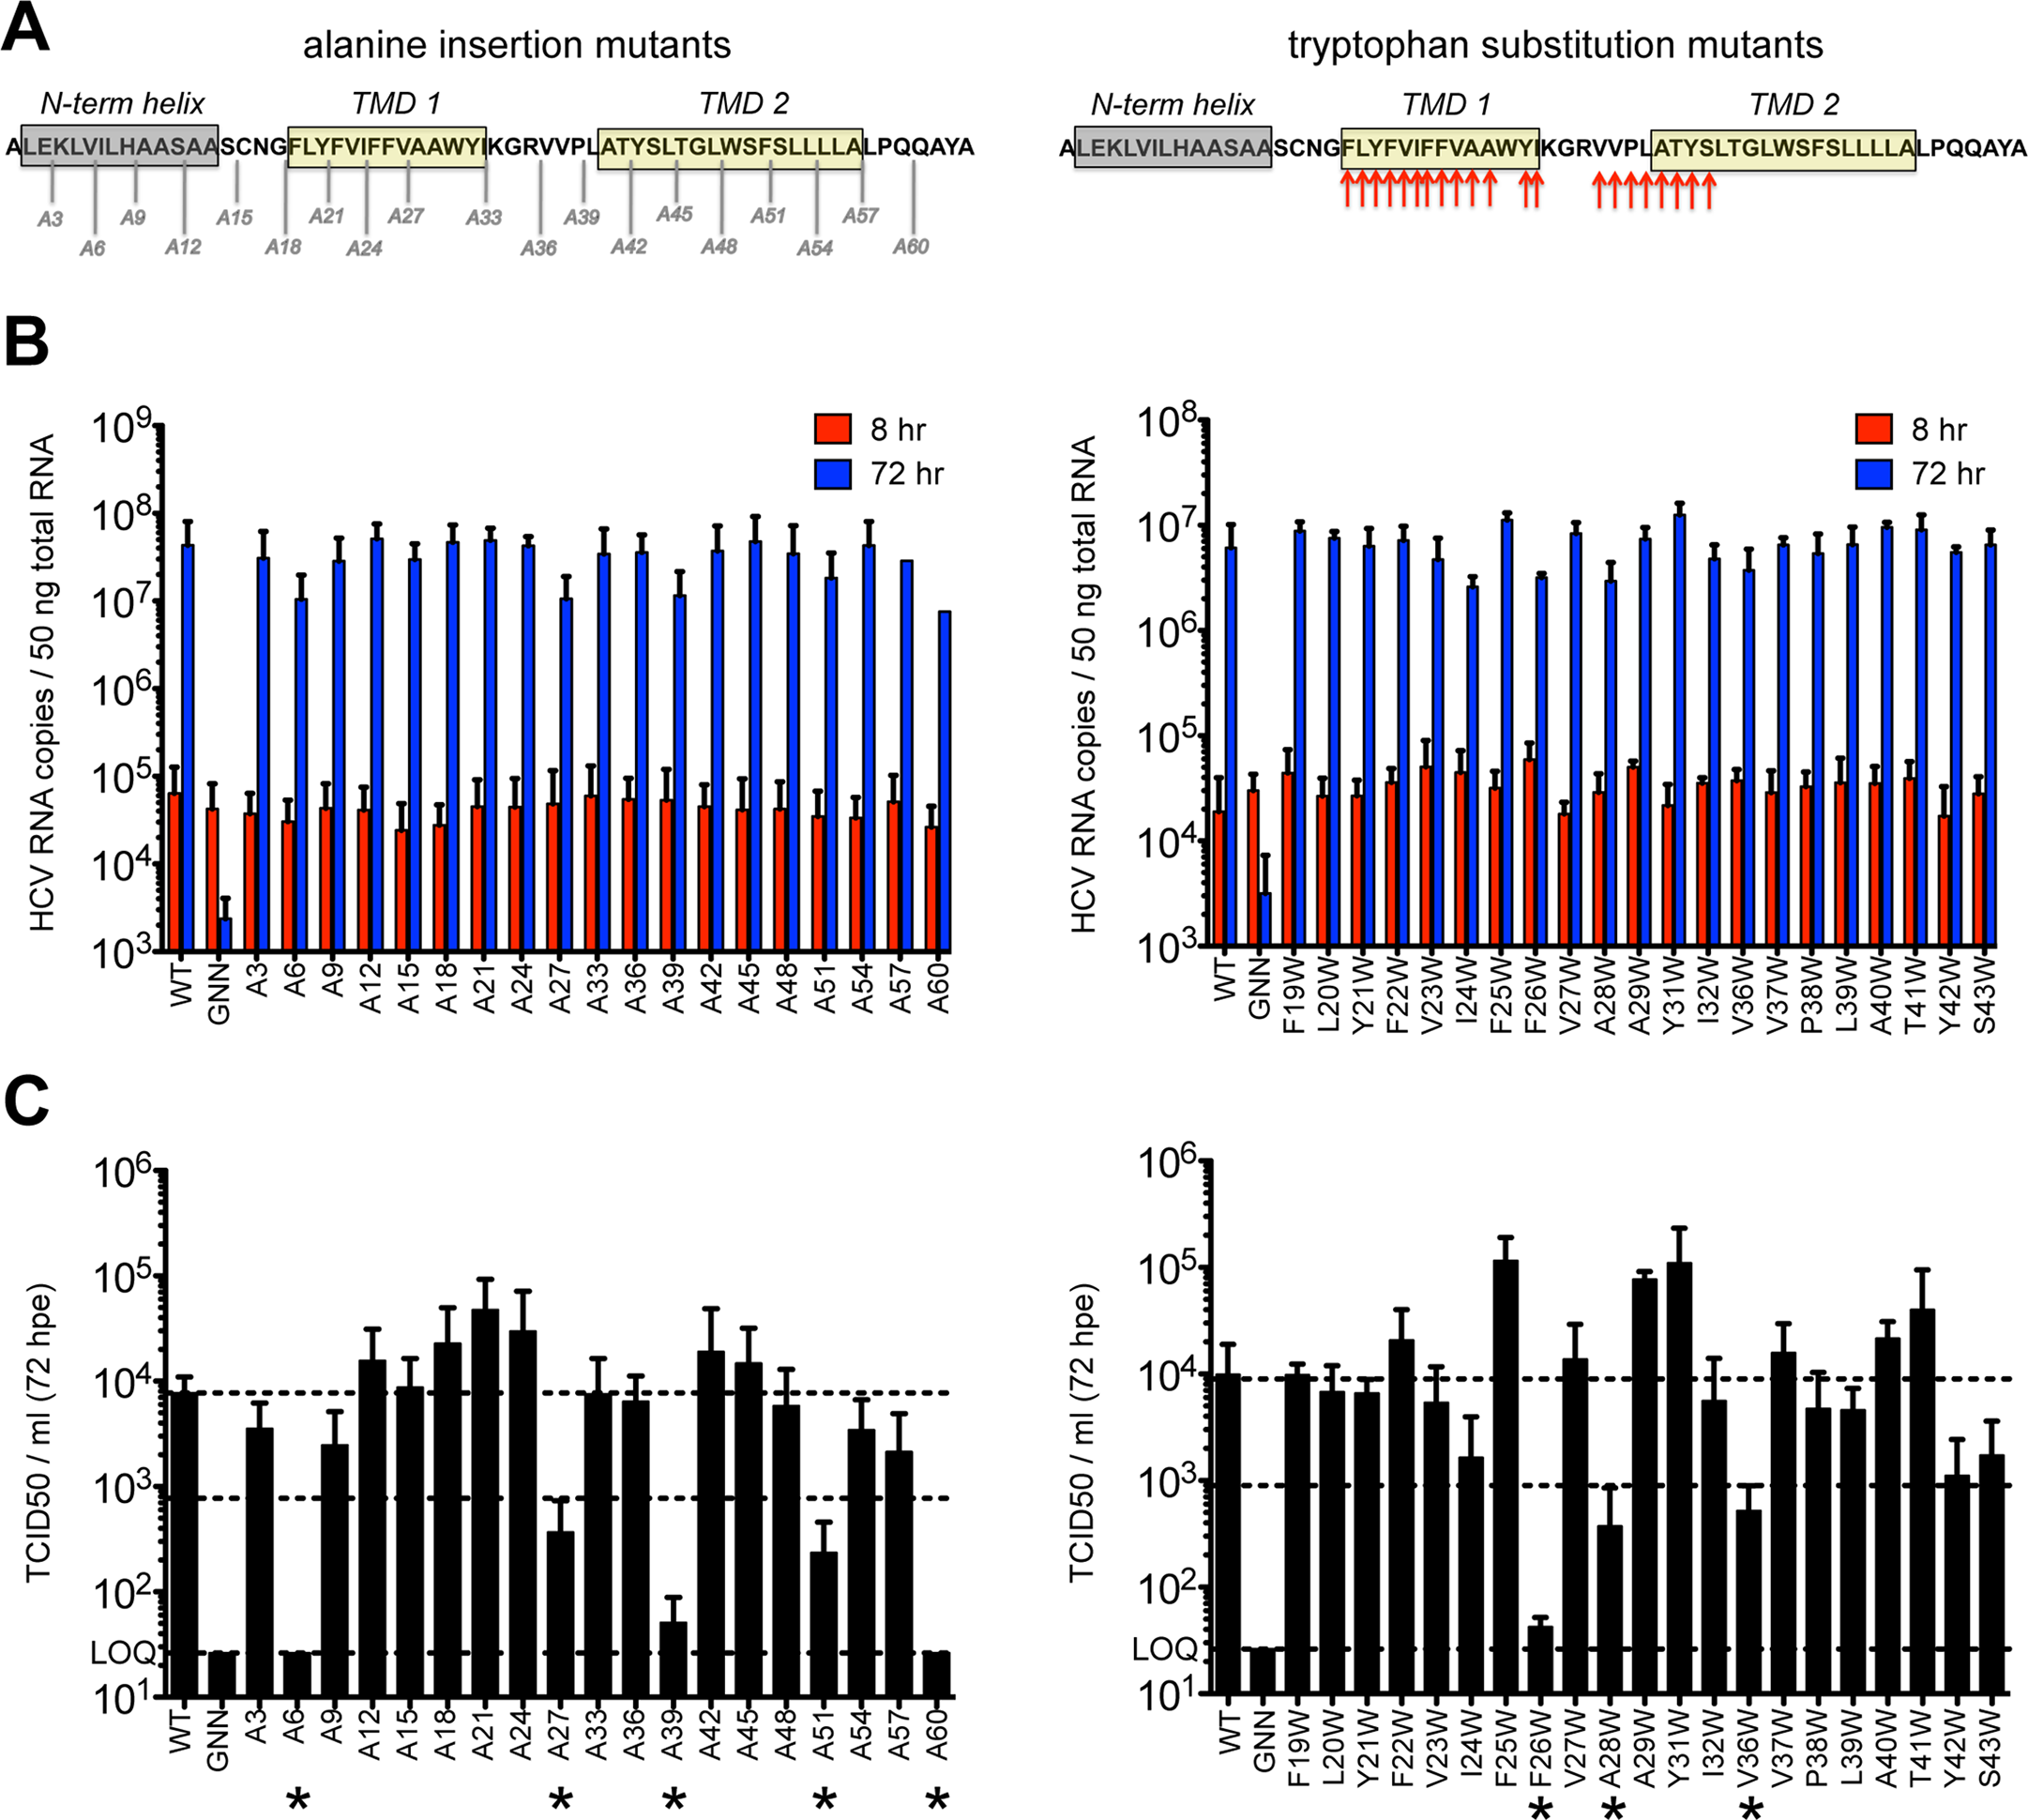 Large-scale mutagenesis of p7 has little impact on infectious virus production.